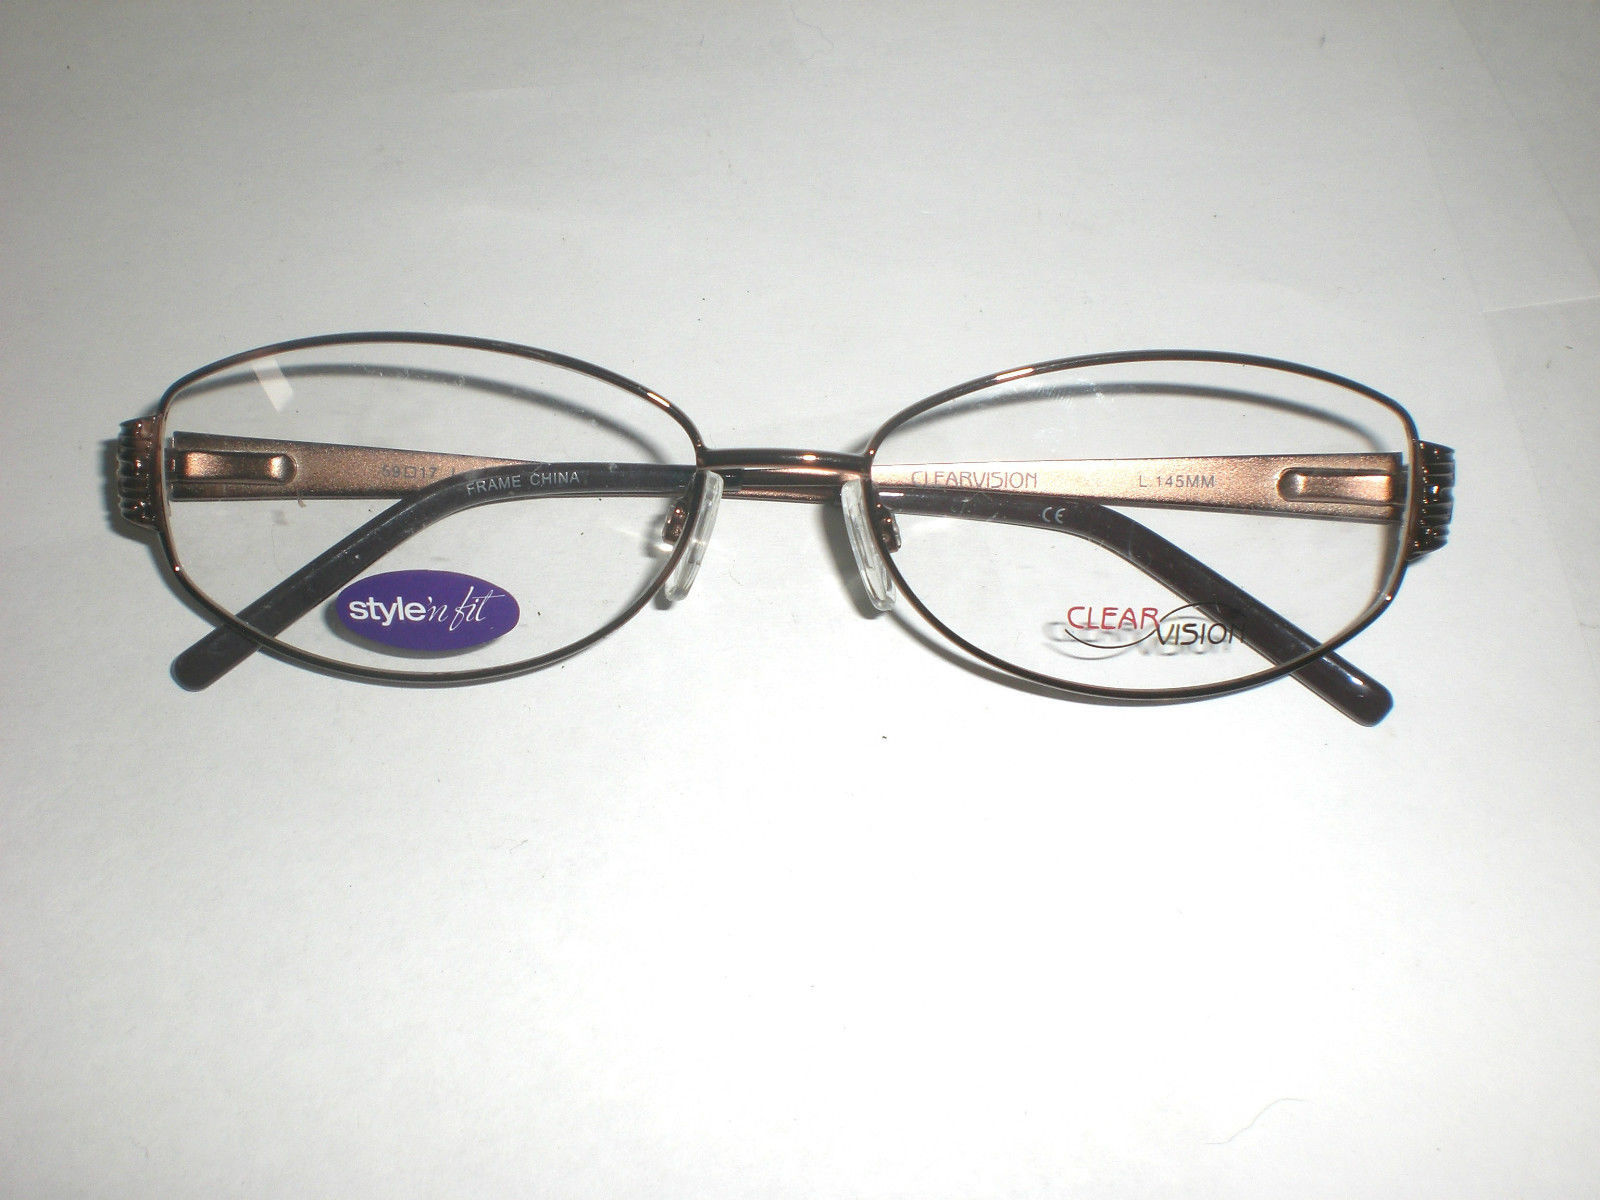 Clearvision Designer Women's Eyeglass Frames Megan Brown Size : 59-17-145 mm - $20.99